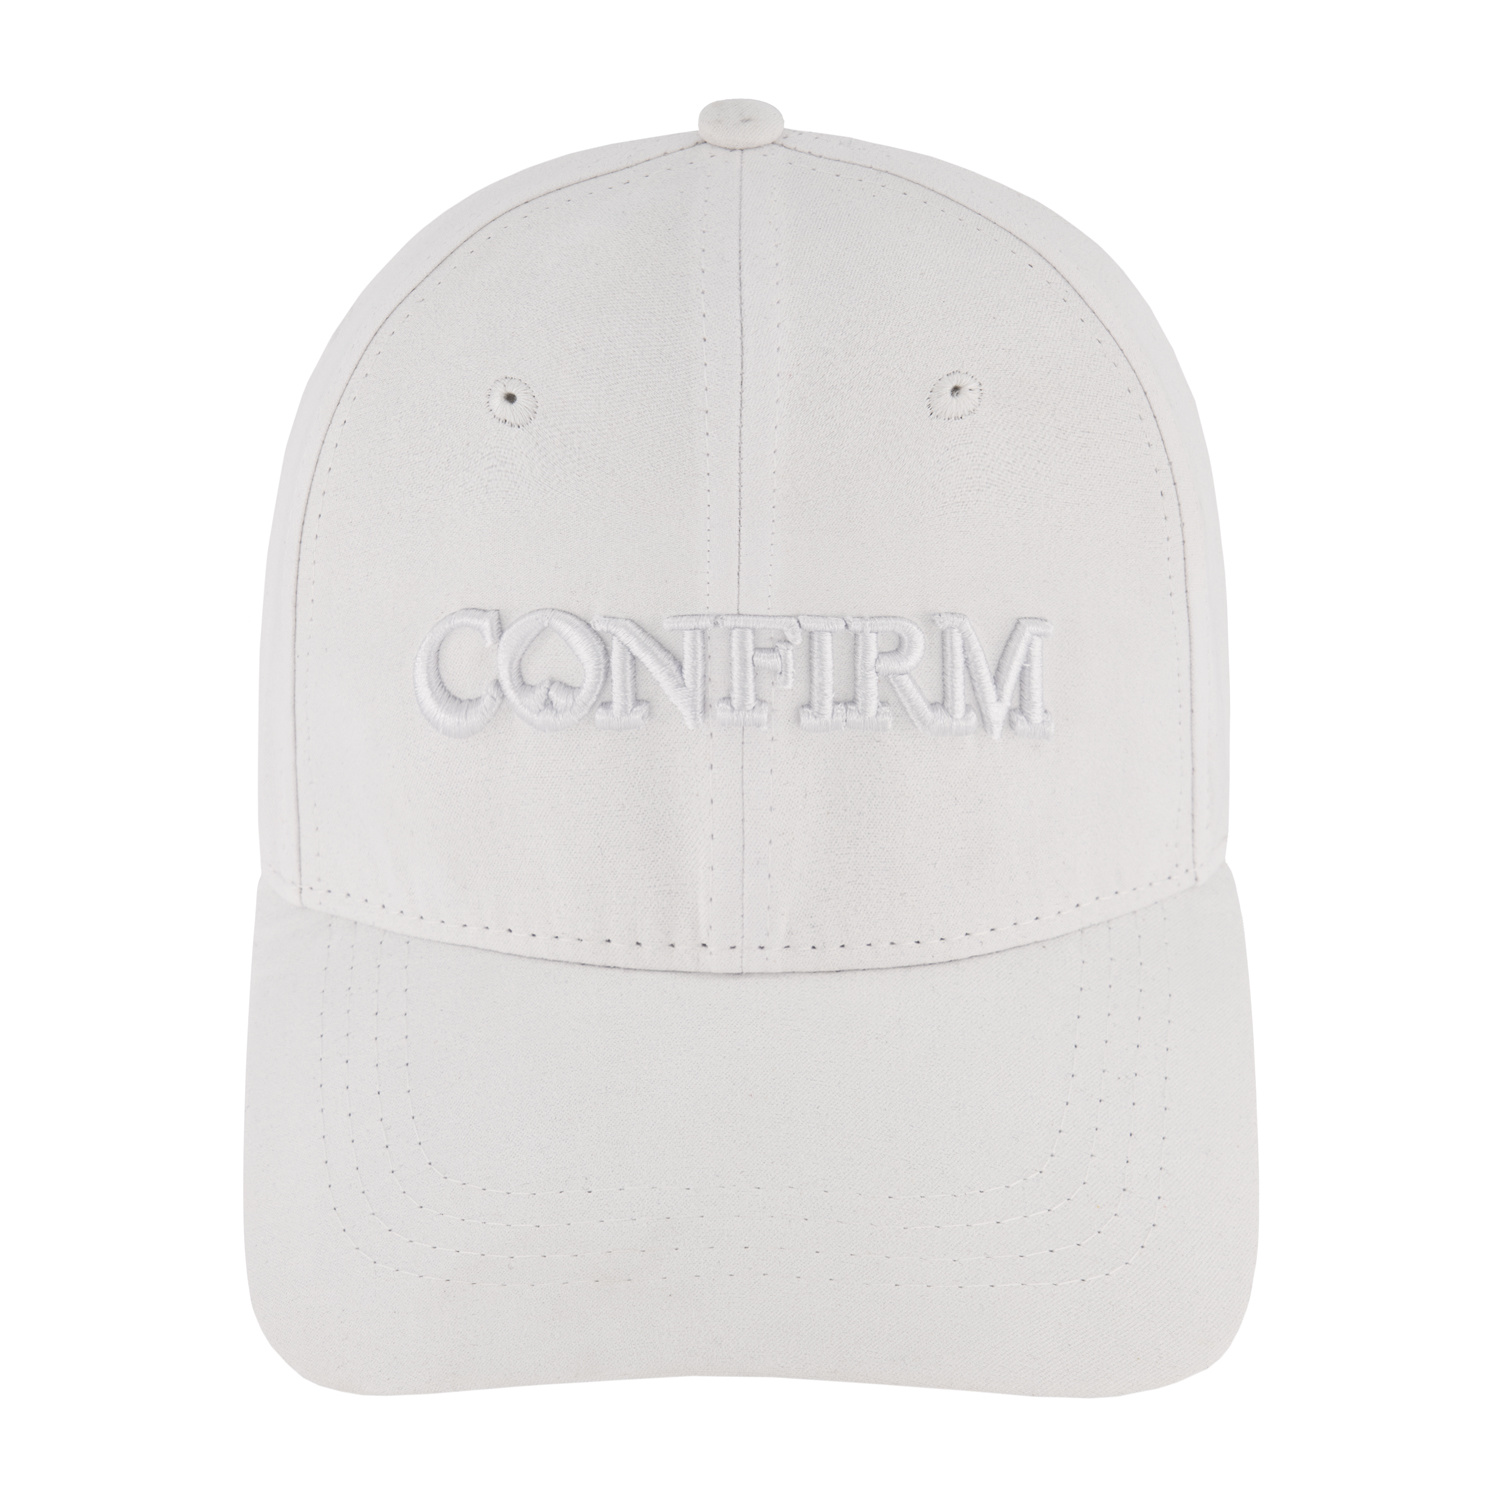 Confirm Brand Suede Cap  Wit-2